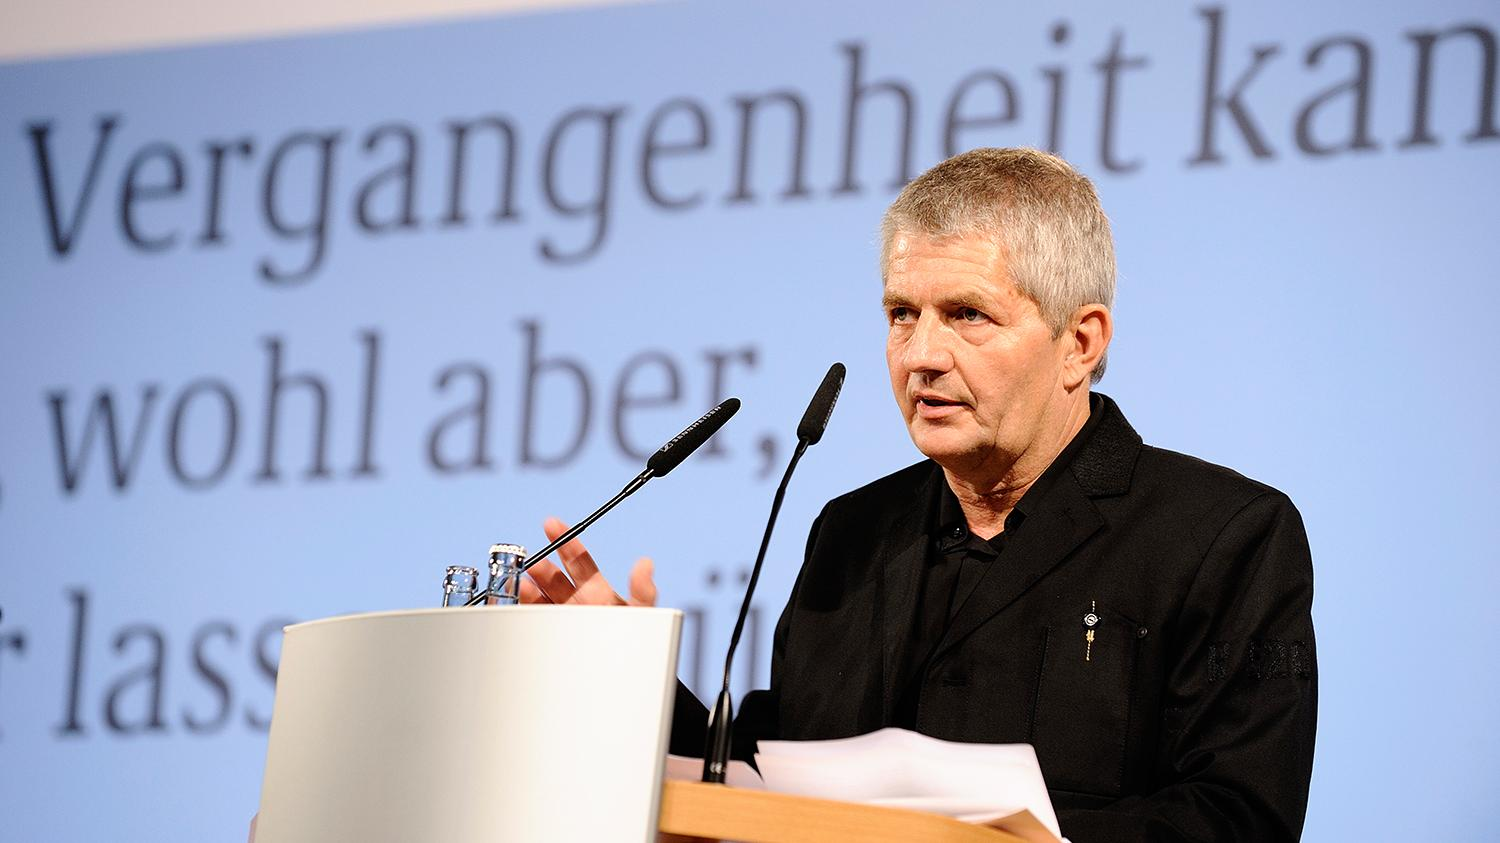 Roland Jahn bei seiner Antrittsrede am 14. März 2011 im Deutschen Historischen Museum Berlin